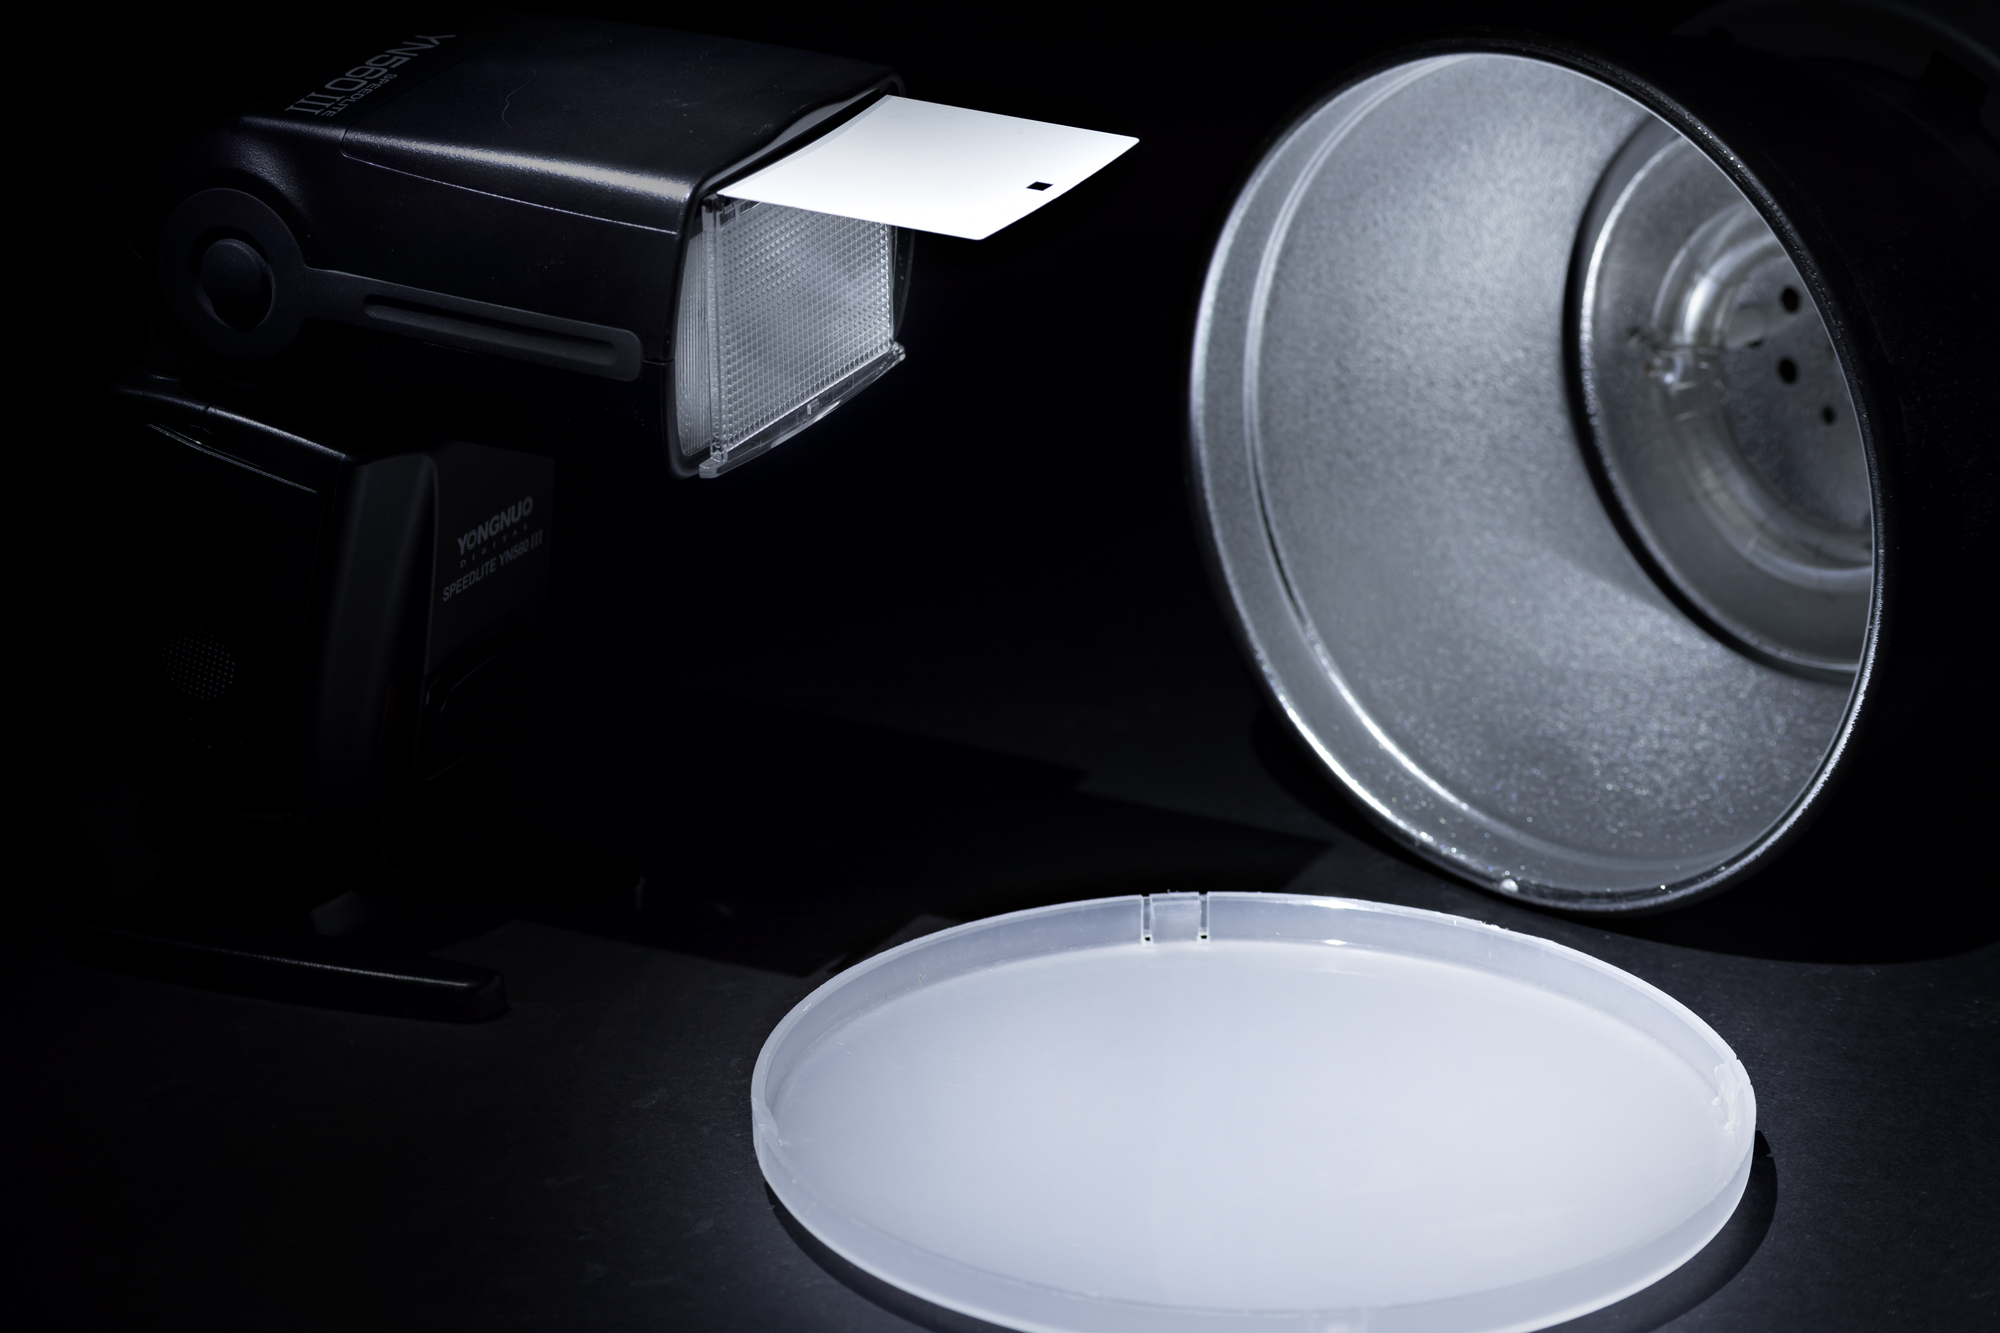 Diffusers can come with the flash as a snap-on accessory, or as a flip-out style that is present on most speedlights.